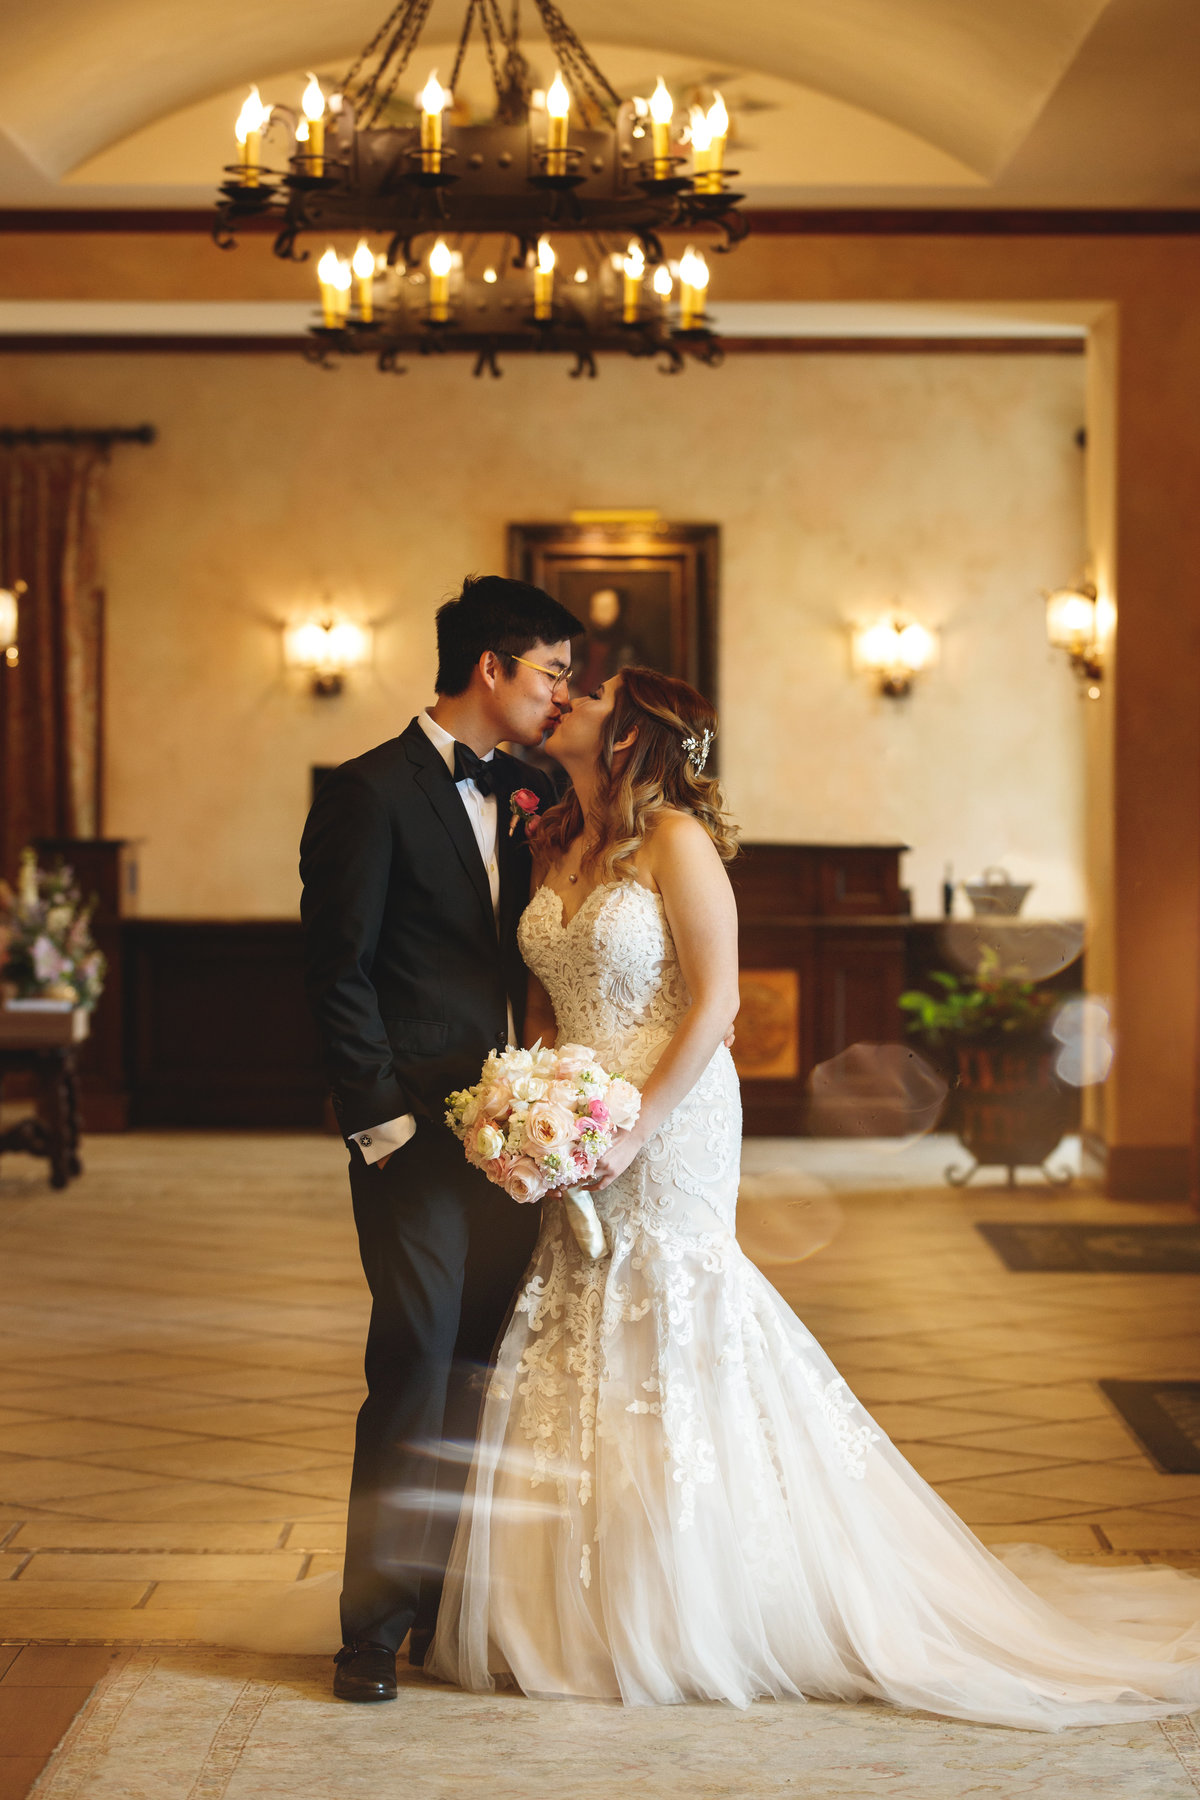 hotel granduca wedding photographer bride groom kiss asian vietnamese lobby 320 S Capital of Texas Hwy, West Lake Hills, TX 78746